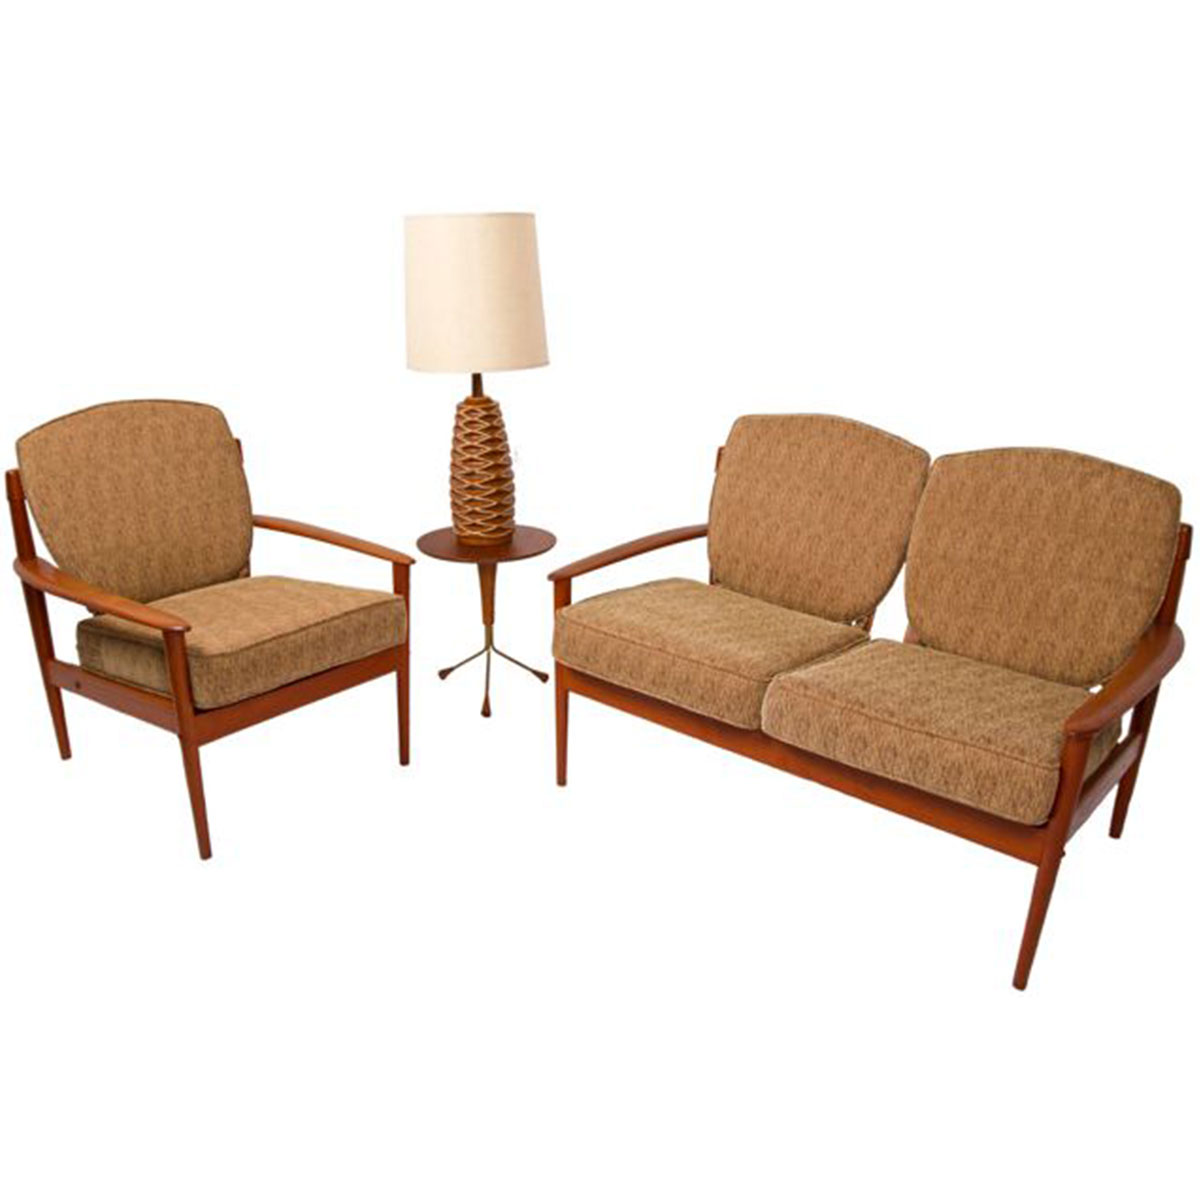 Grete Jalk Danish Modern Teak Settee & Lounge Chair Set